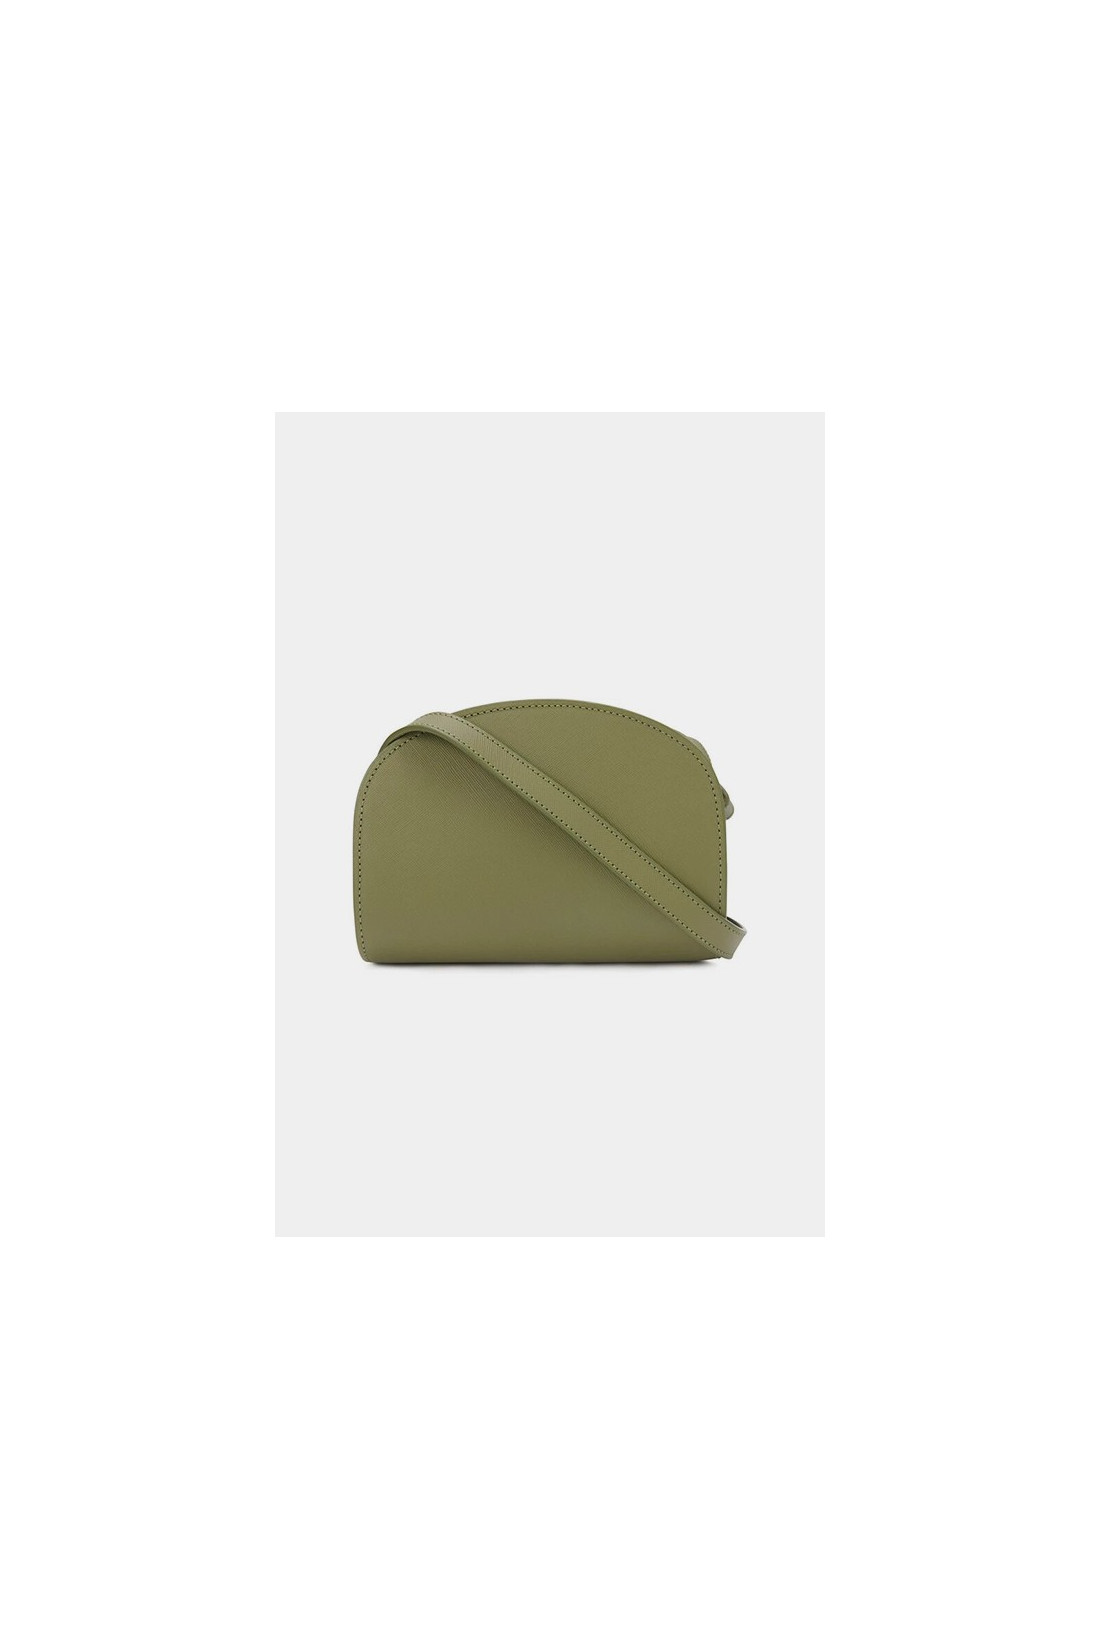 A.P.C. FOR WOMAN / Sac demi-lune mini embosse Tilleul